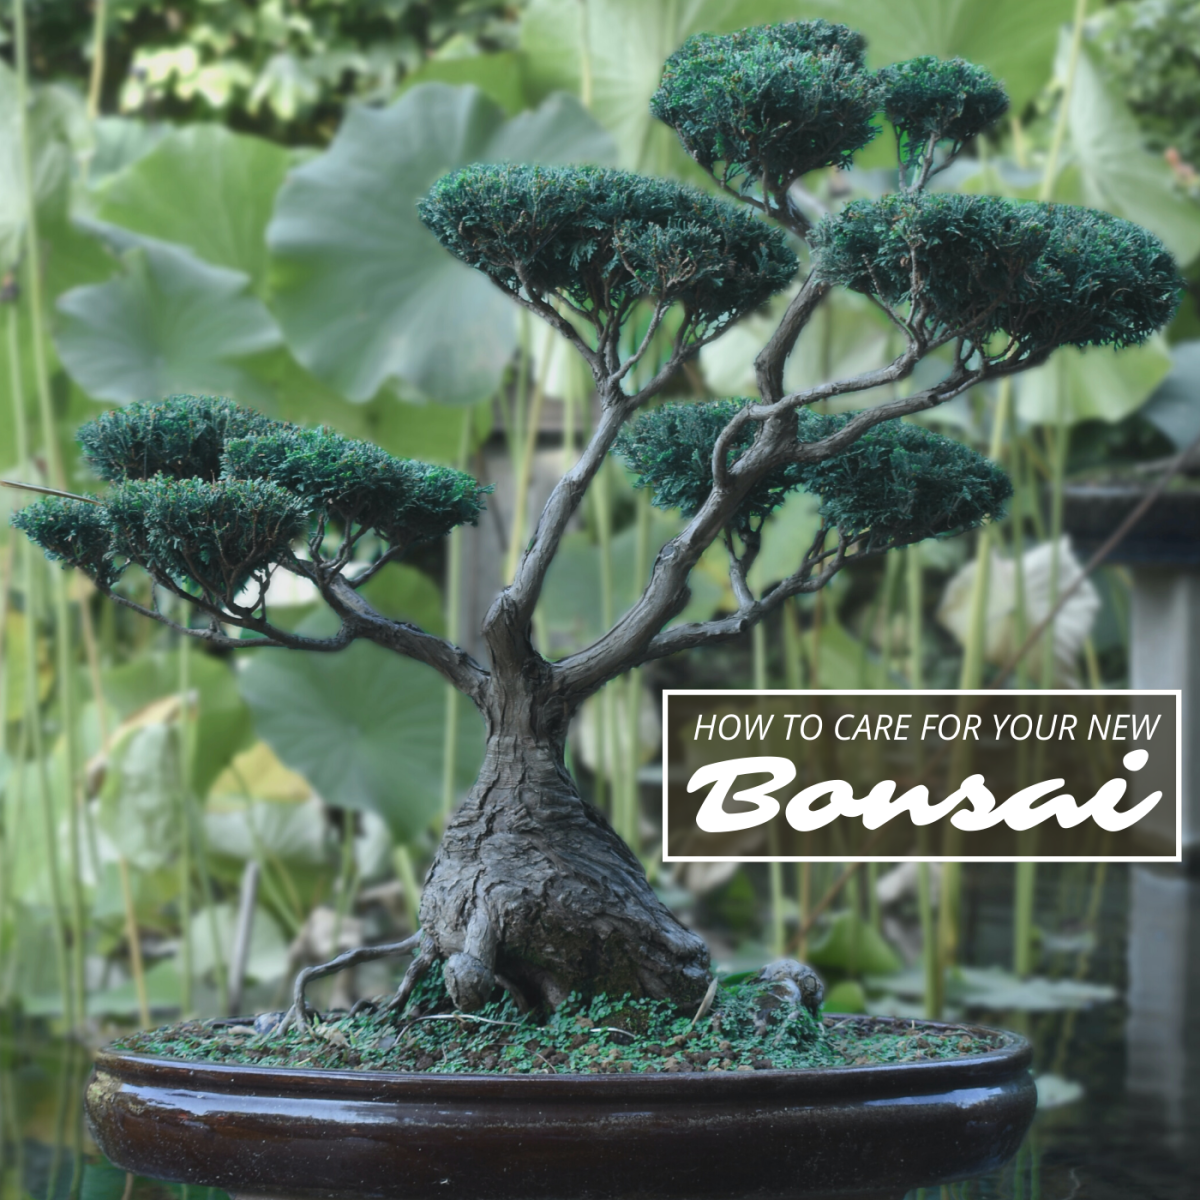 Bonsai trees grow slowly and require a lot of care, but proper maintenance can yield breathtaking results.